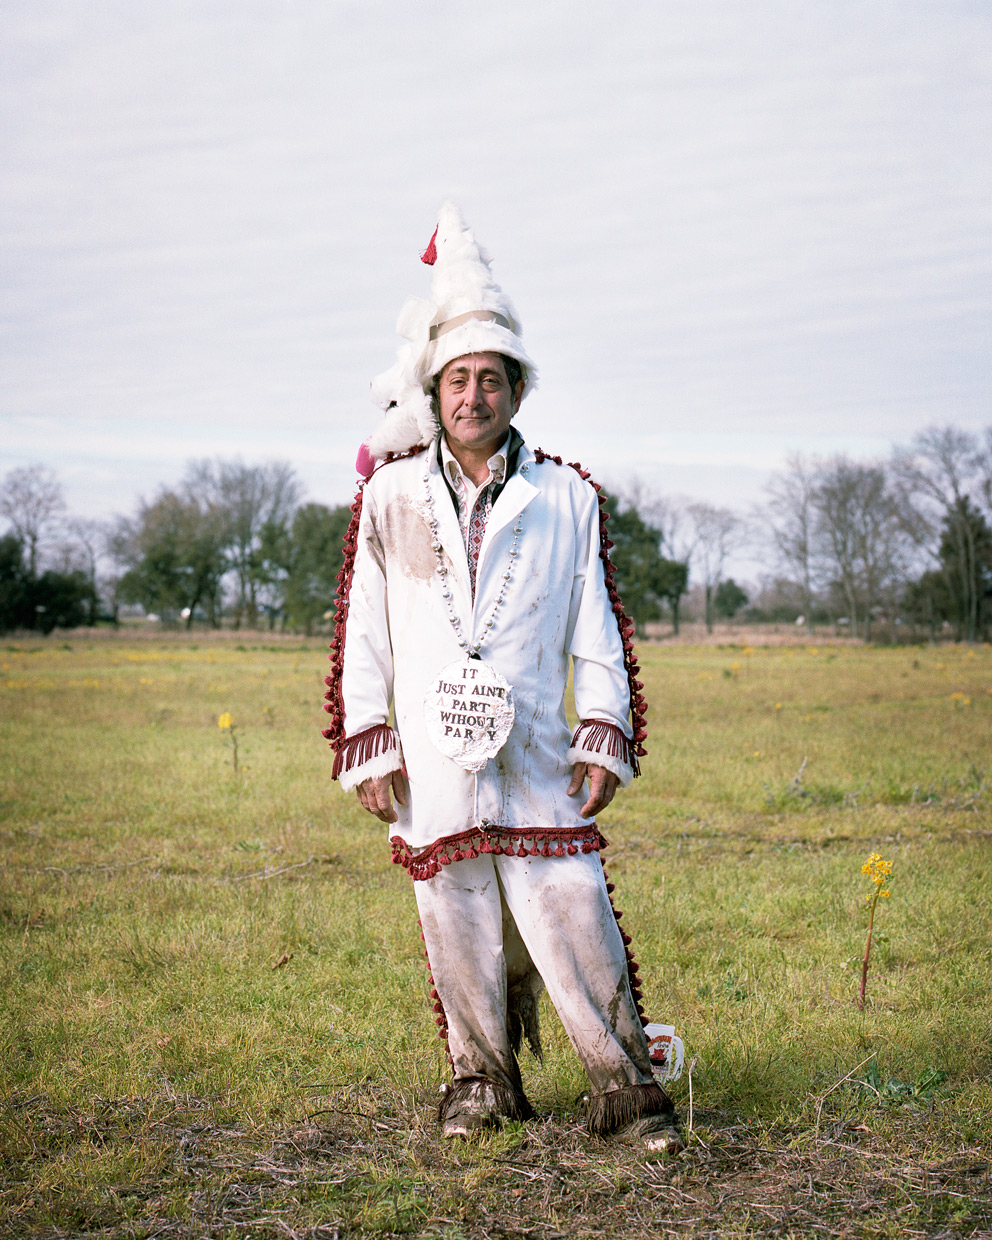 New Orleans Photojournalist and Editorial Photographer Edmund D. Fountain - Cajun Mardi Gras